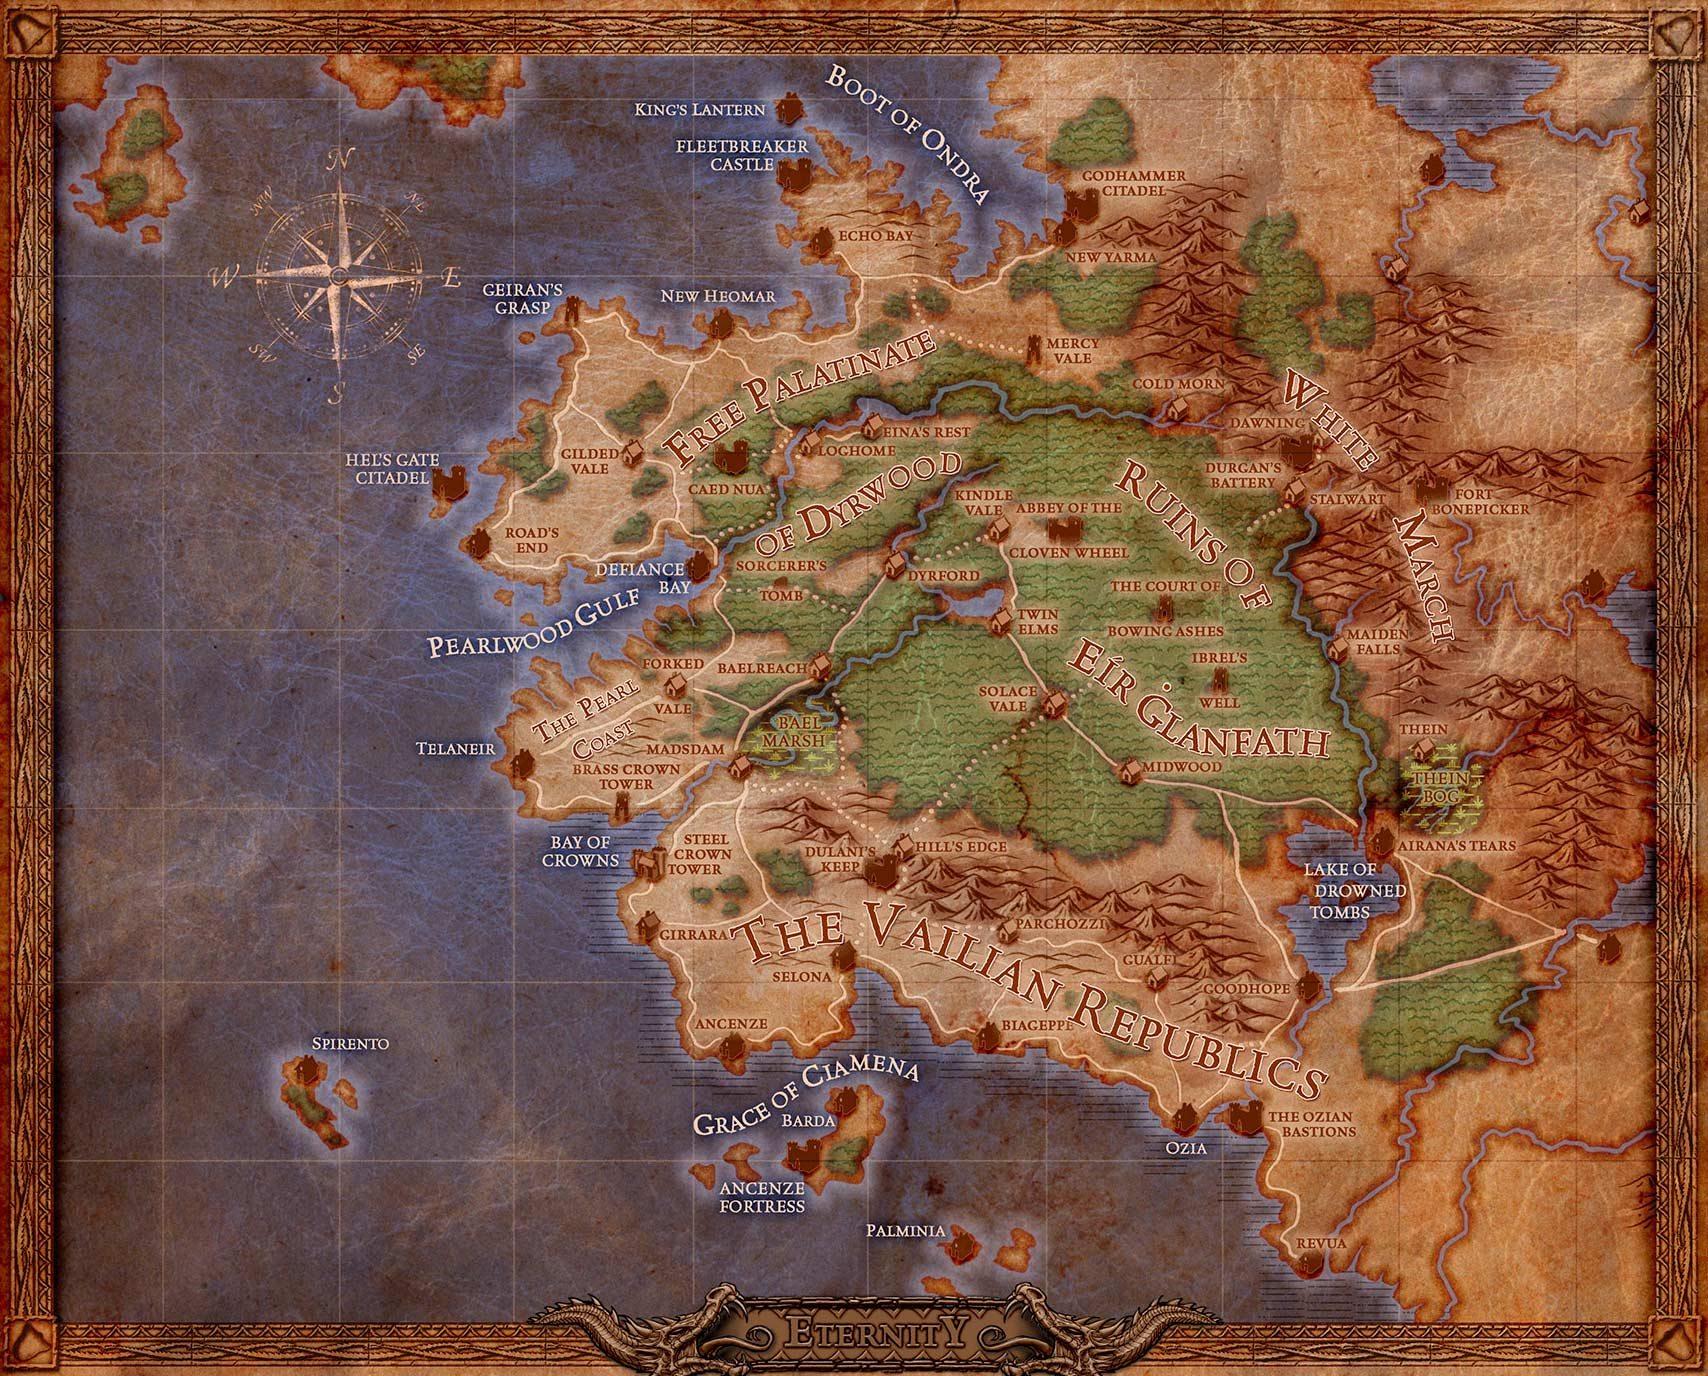 Pillars of Eternity Walkthrough with Maps Game Guide